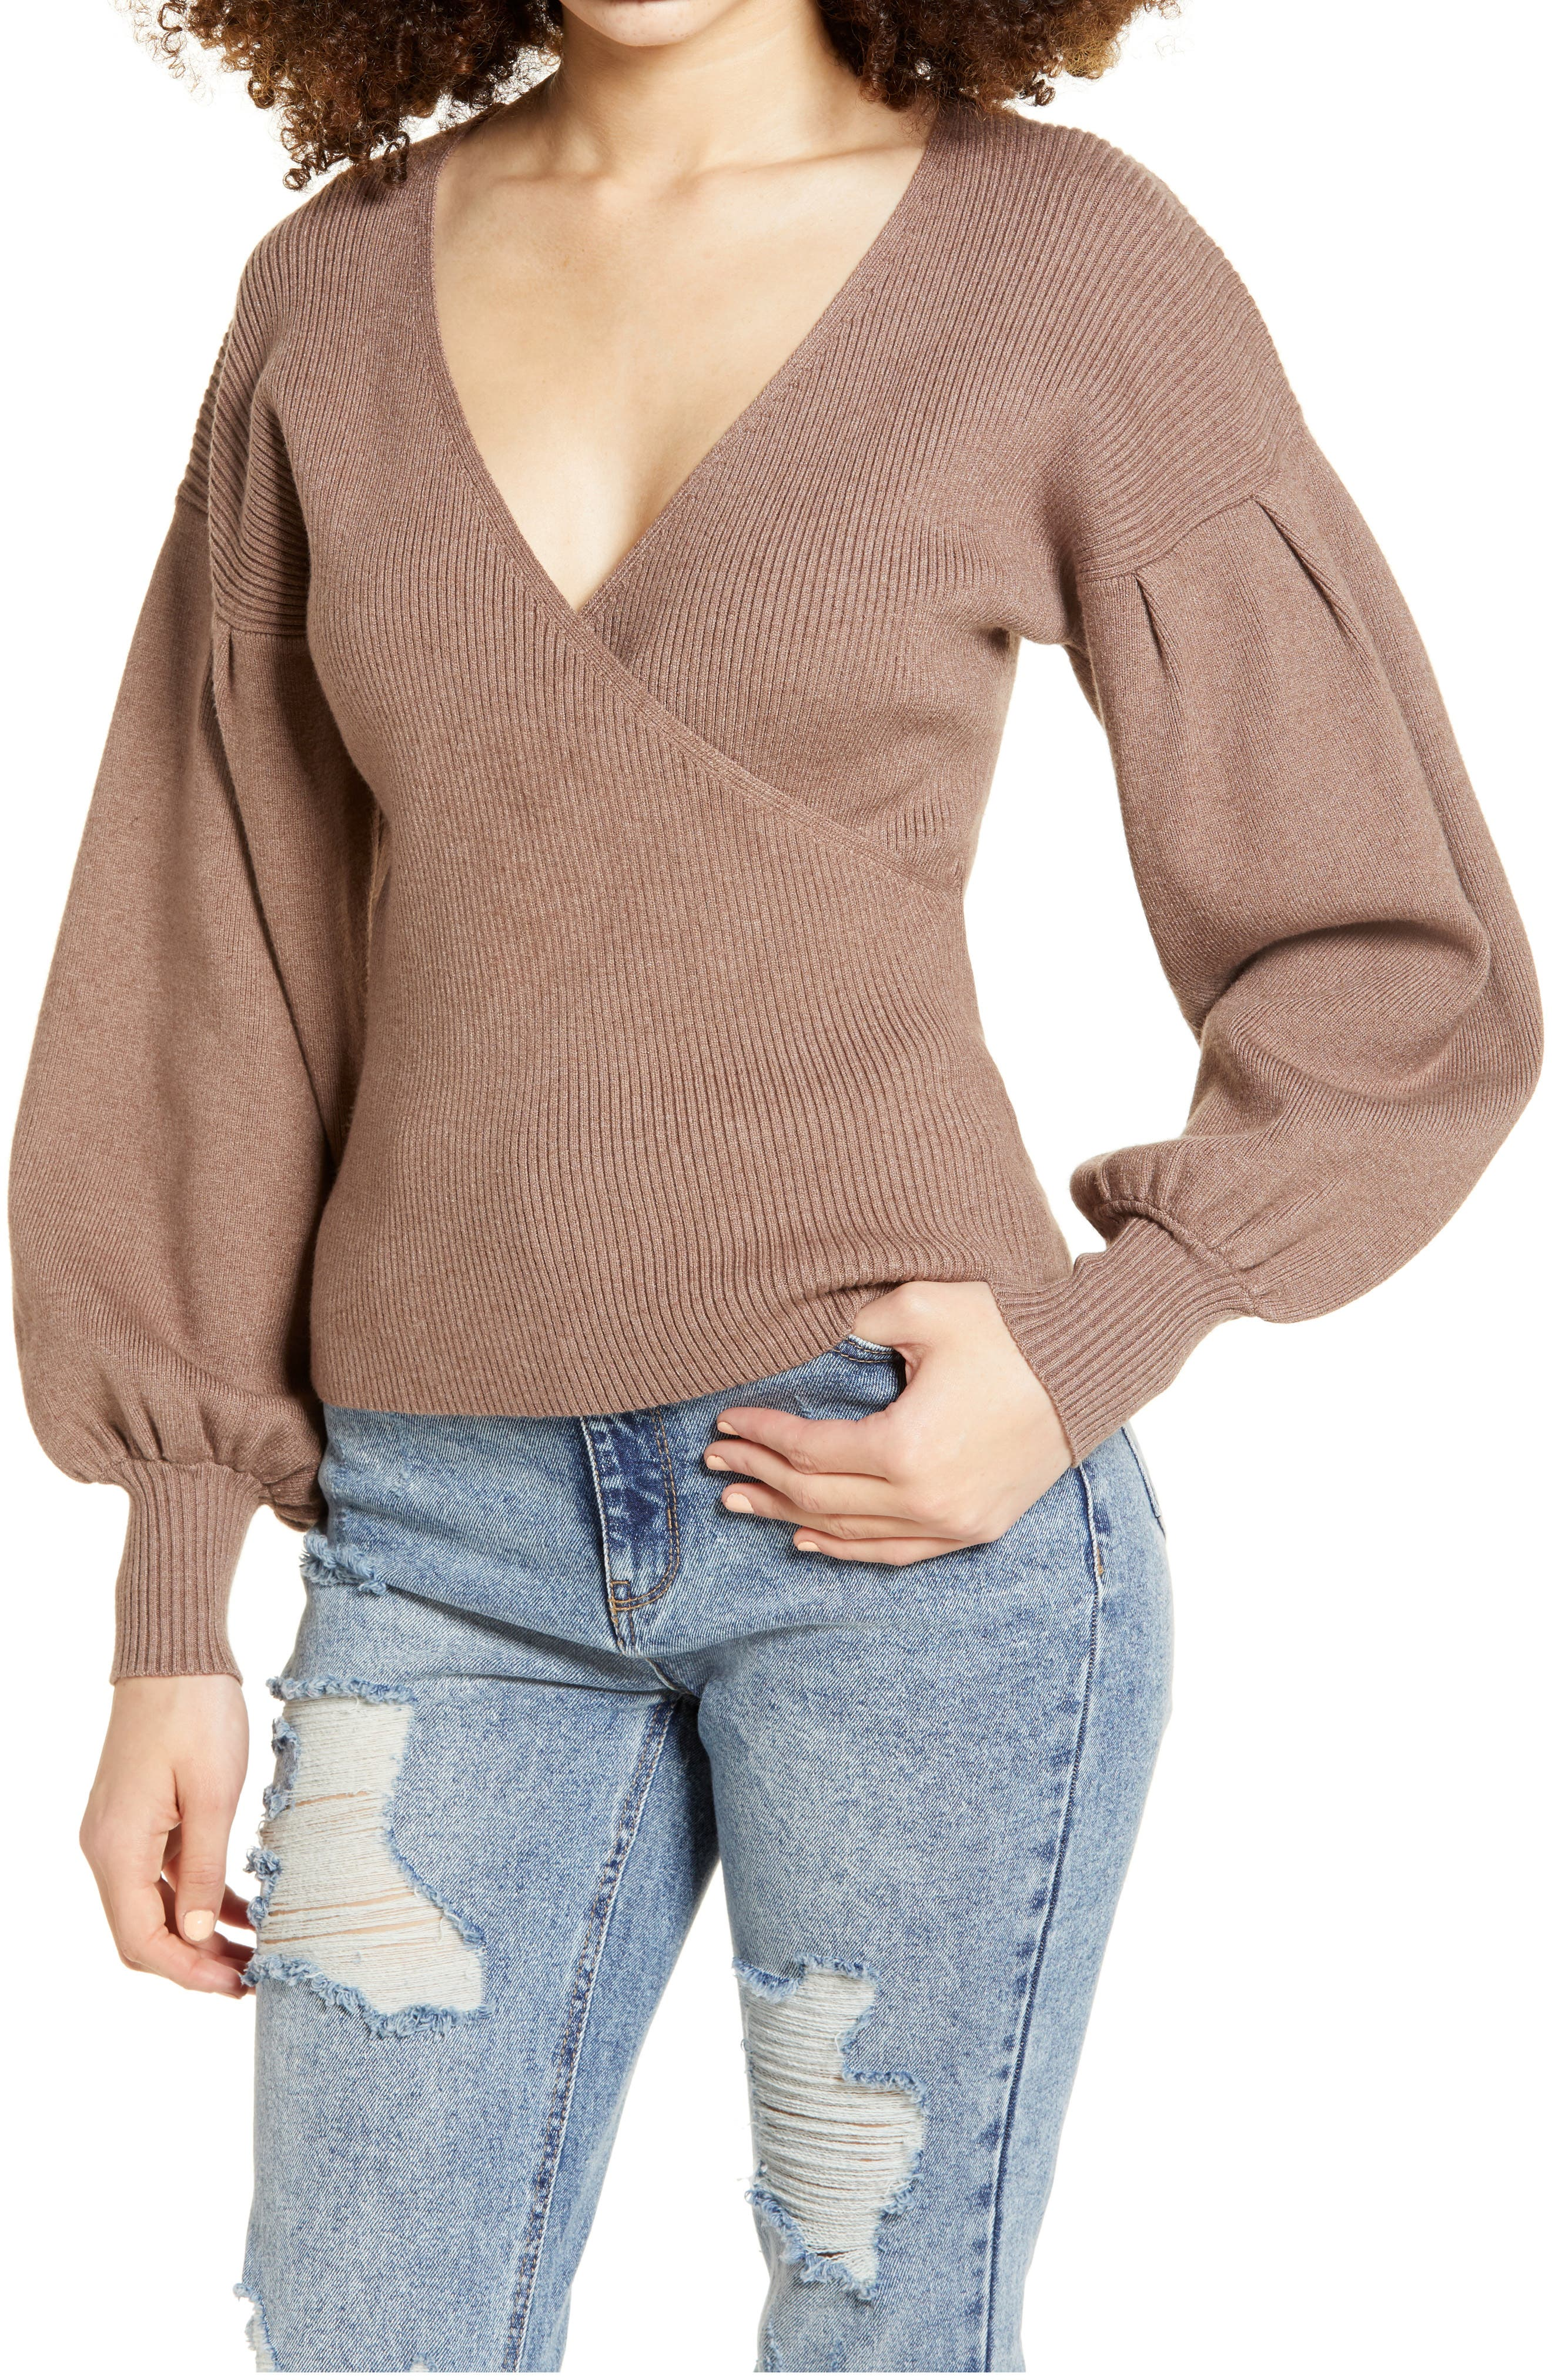 Voluminous bishop sleeves with a finer rib bring trend-savvy style to this drop-shoulder sweater with a surplice V-neck. Style Name: All In Favor Rib Bishop Sleeve Surplice Ribbed Sweater. Style Number: 6049854. Available in stores.